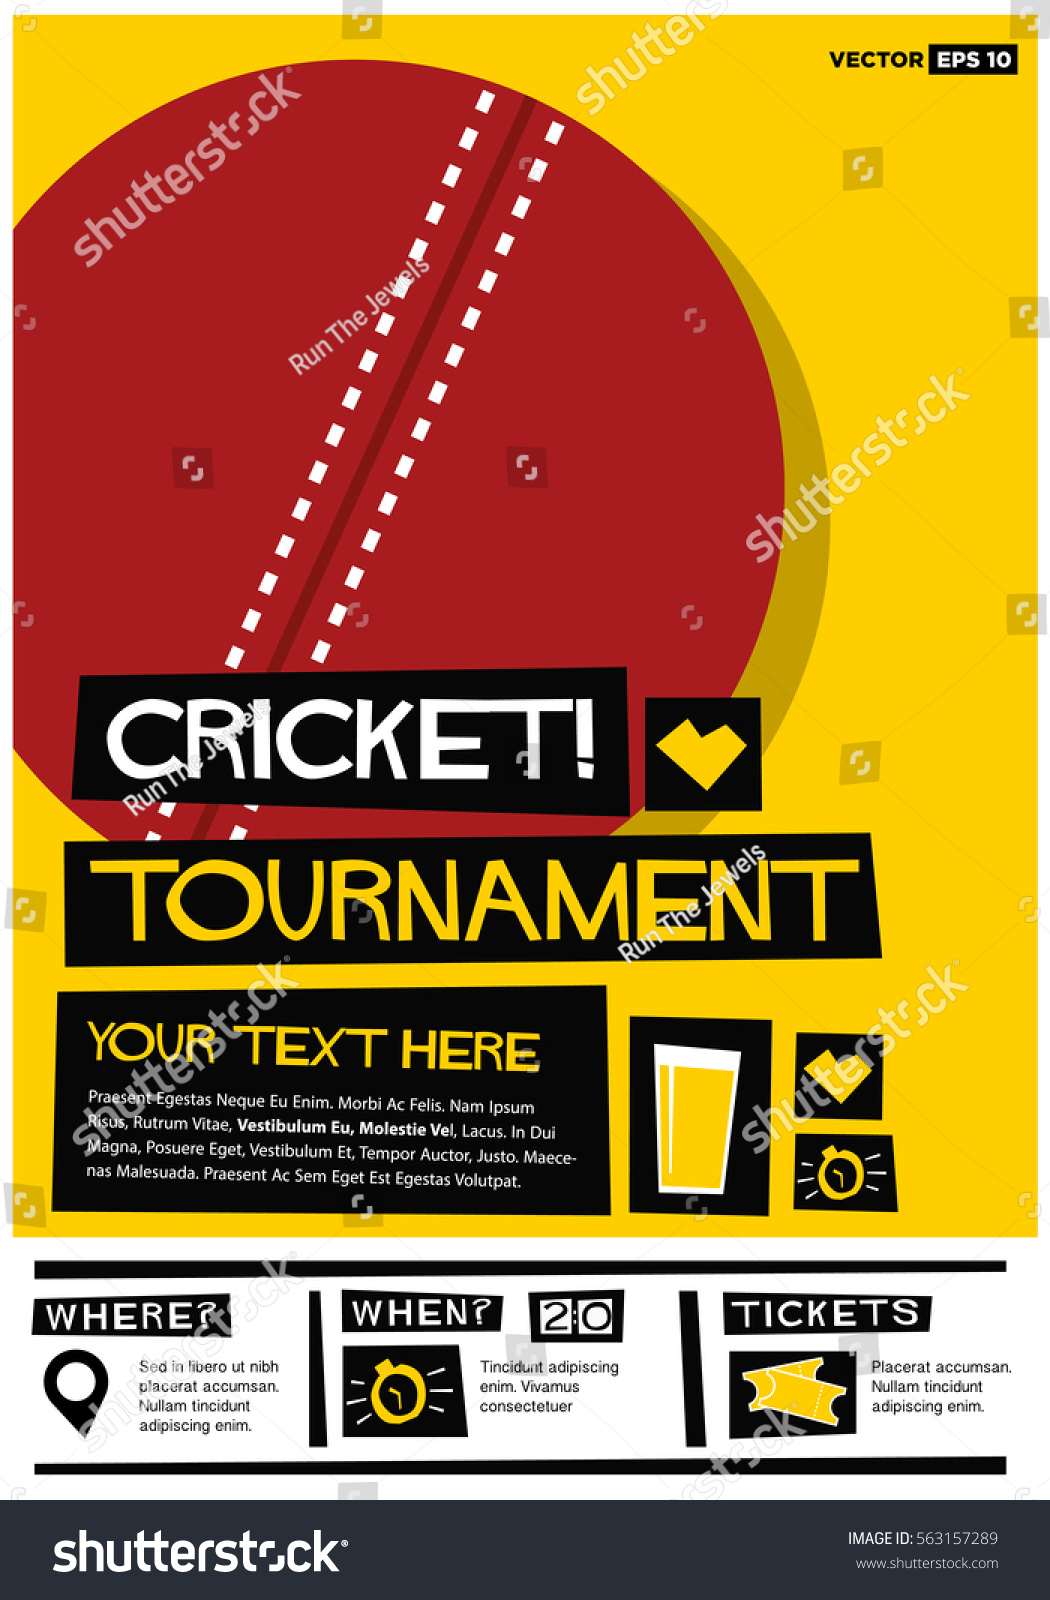 Invitation For Corporate Cricket Tournament: Cricket Tournament Flat Style Vector Illustration Stock